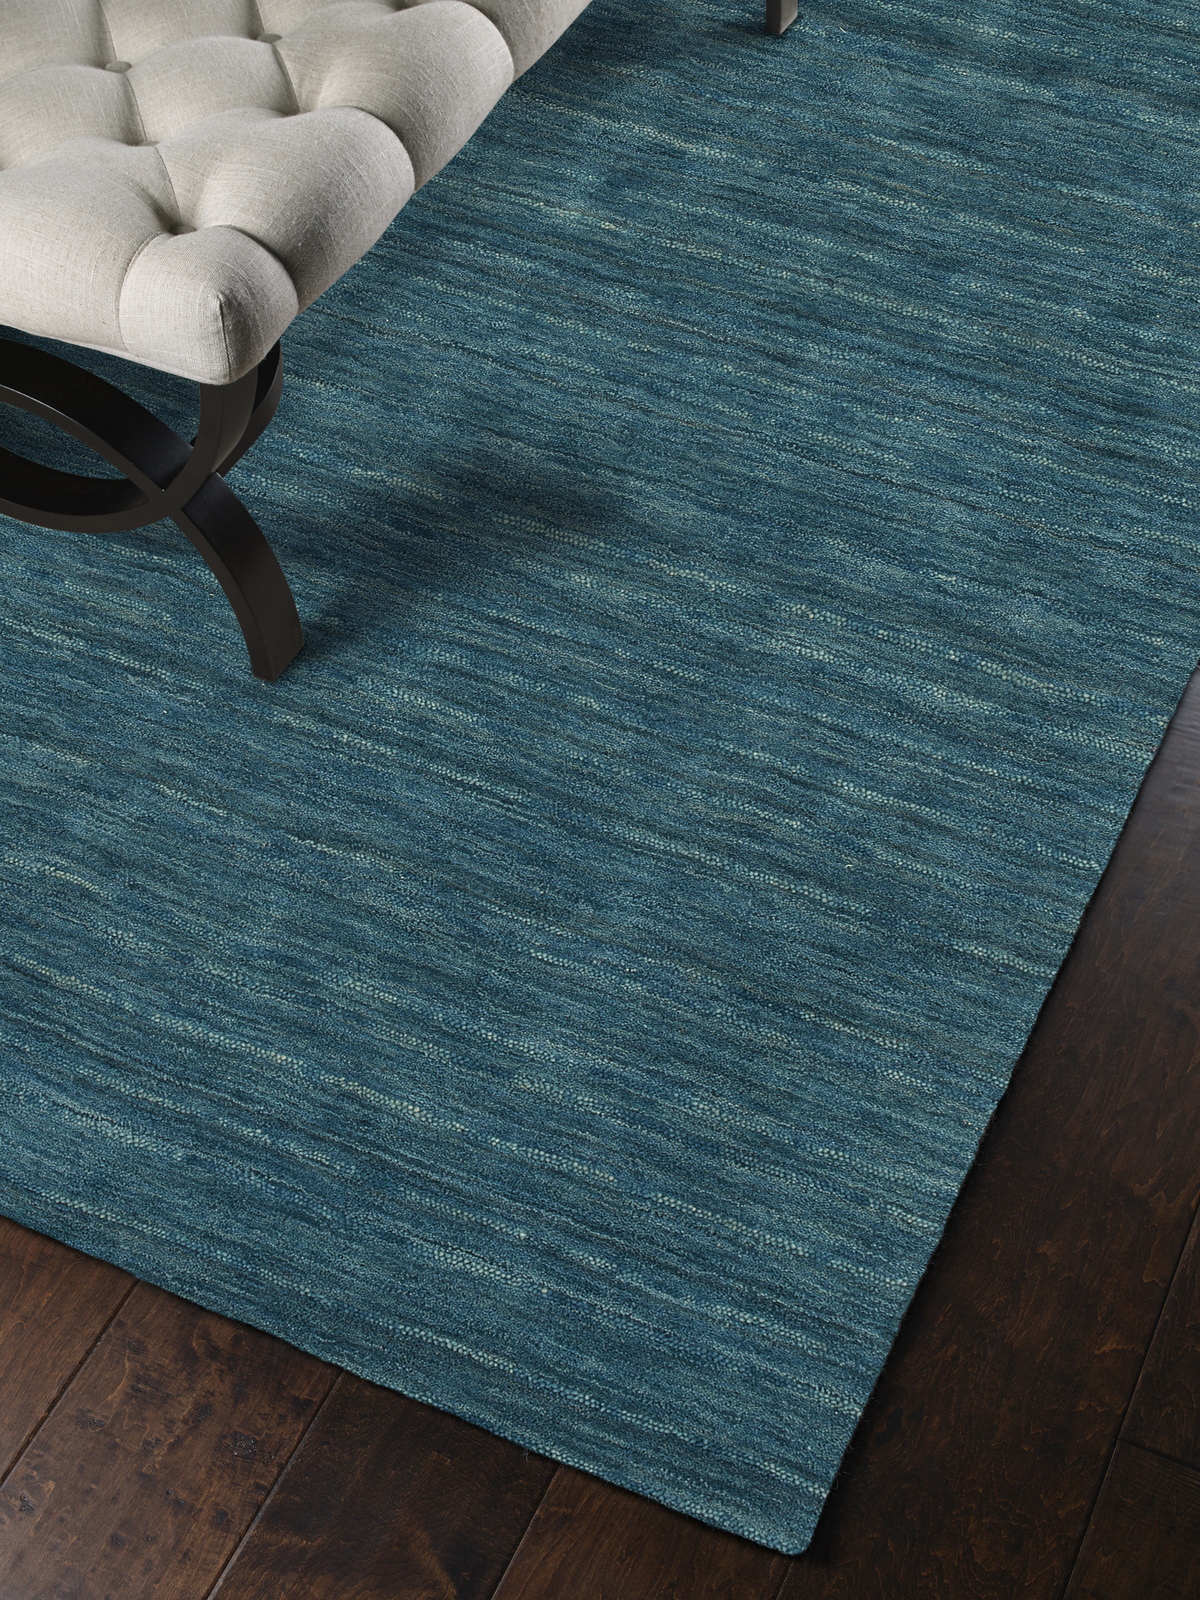 charming dalyn rugs in blur on wooden floor plus chair for living room decor ideas